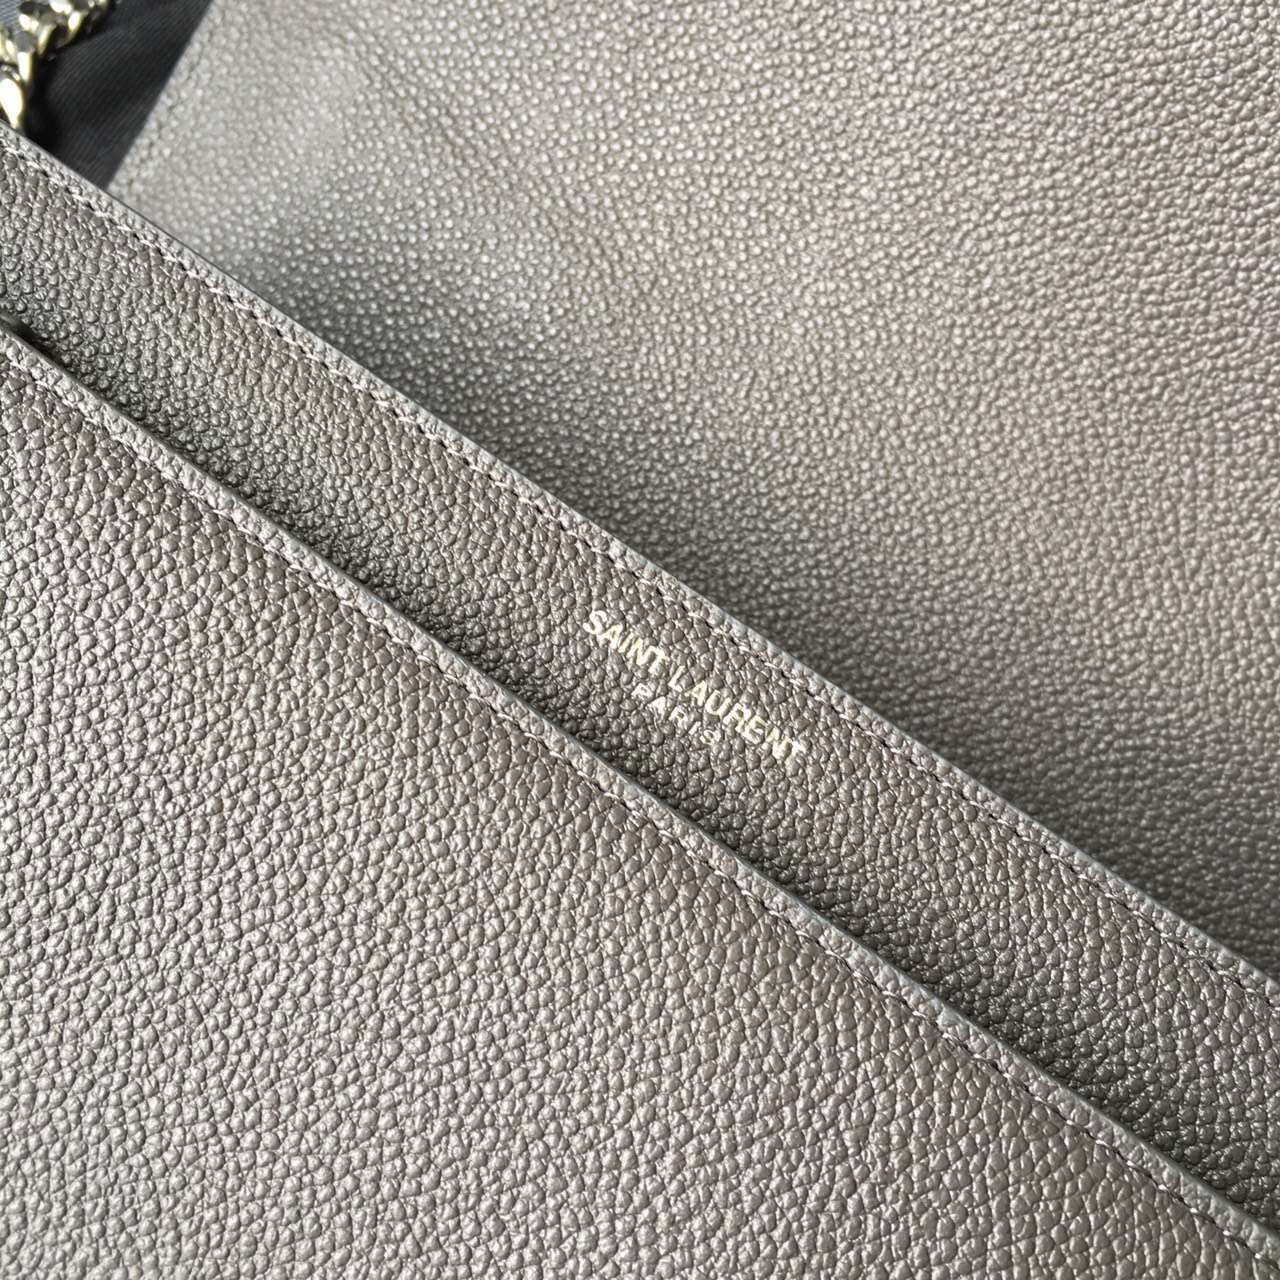 Limited Edition!2016 Saint Laurent Bags Cheap Sale-Saint Laurent Medium Sunset Monogram Bag in Dark Anthracite Grained Leather